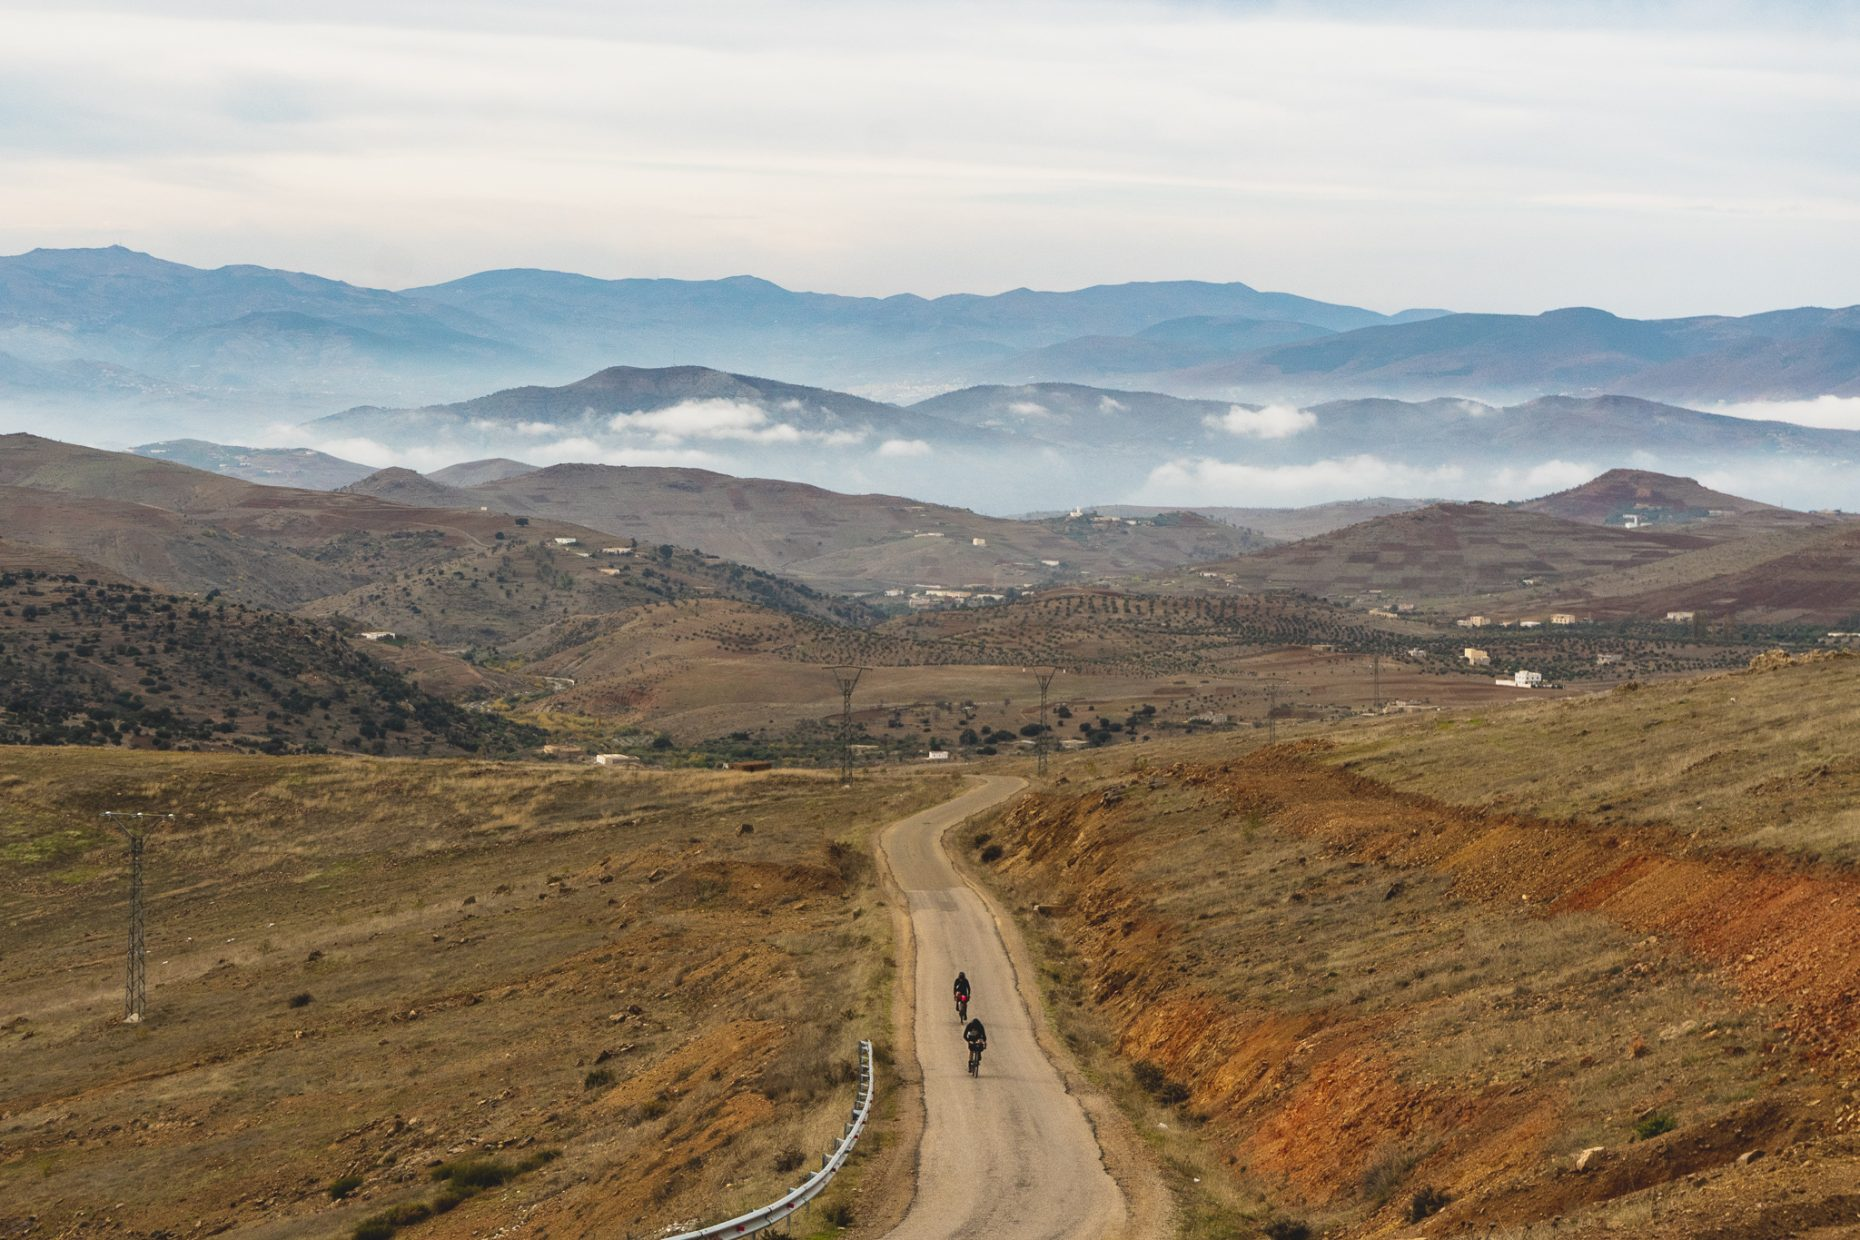 Bikepacking in Morocco